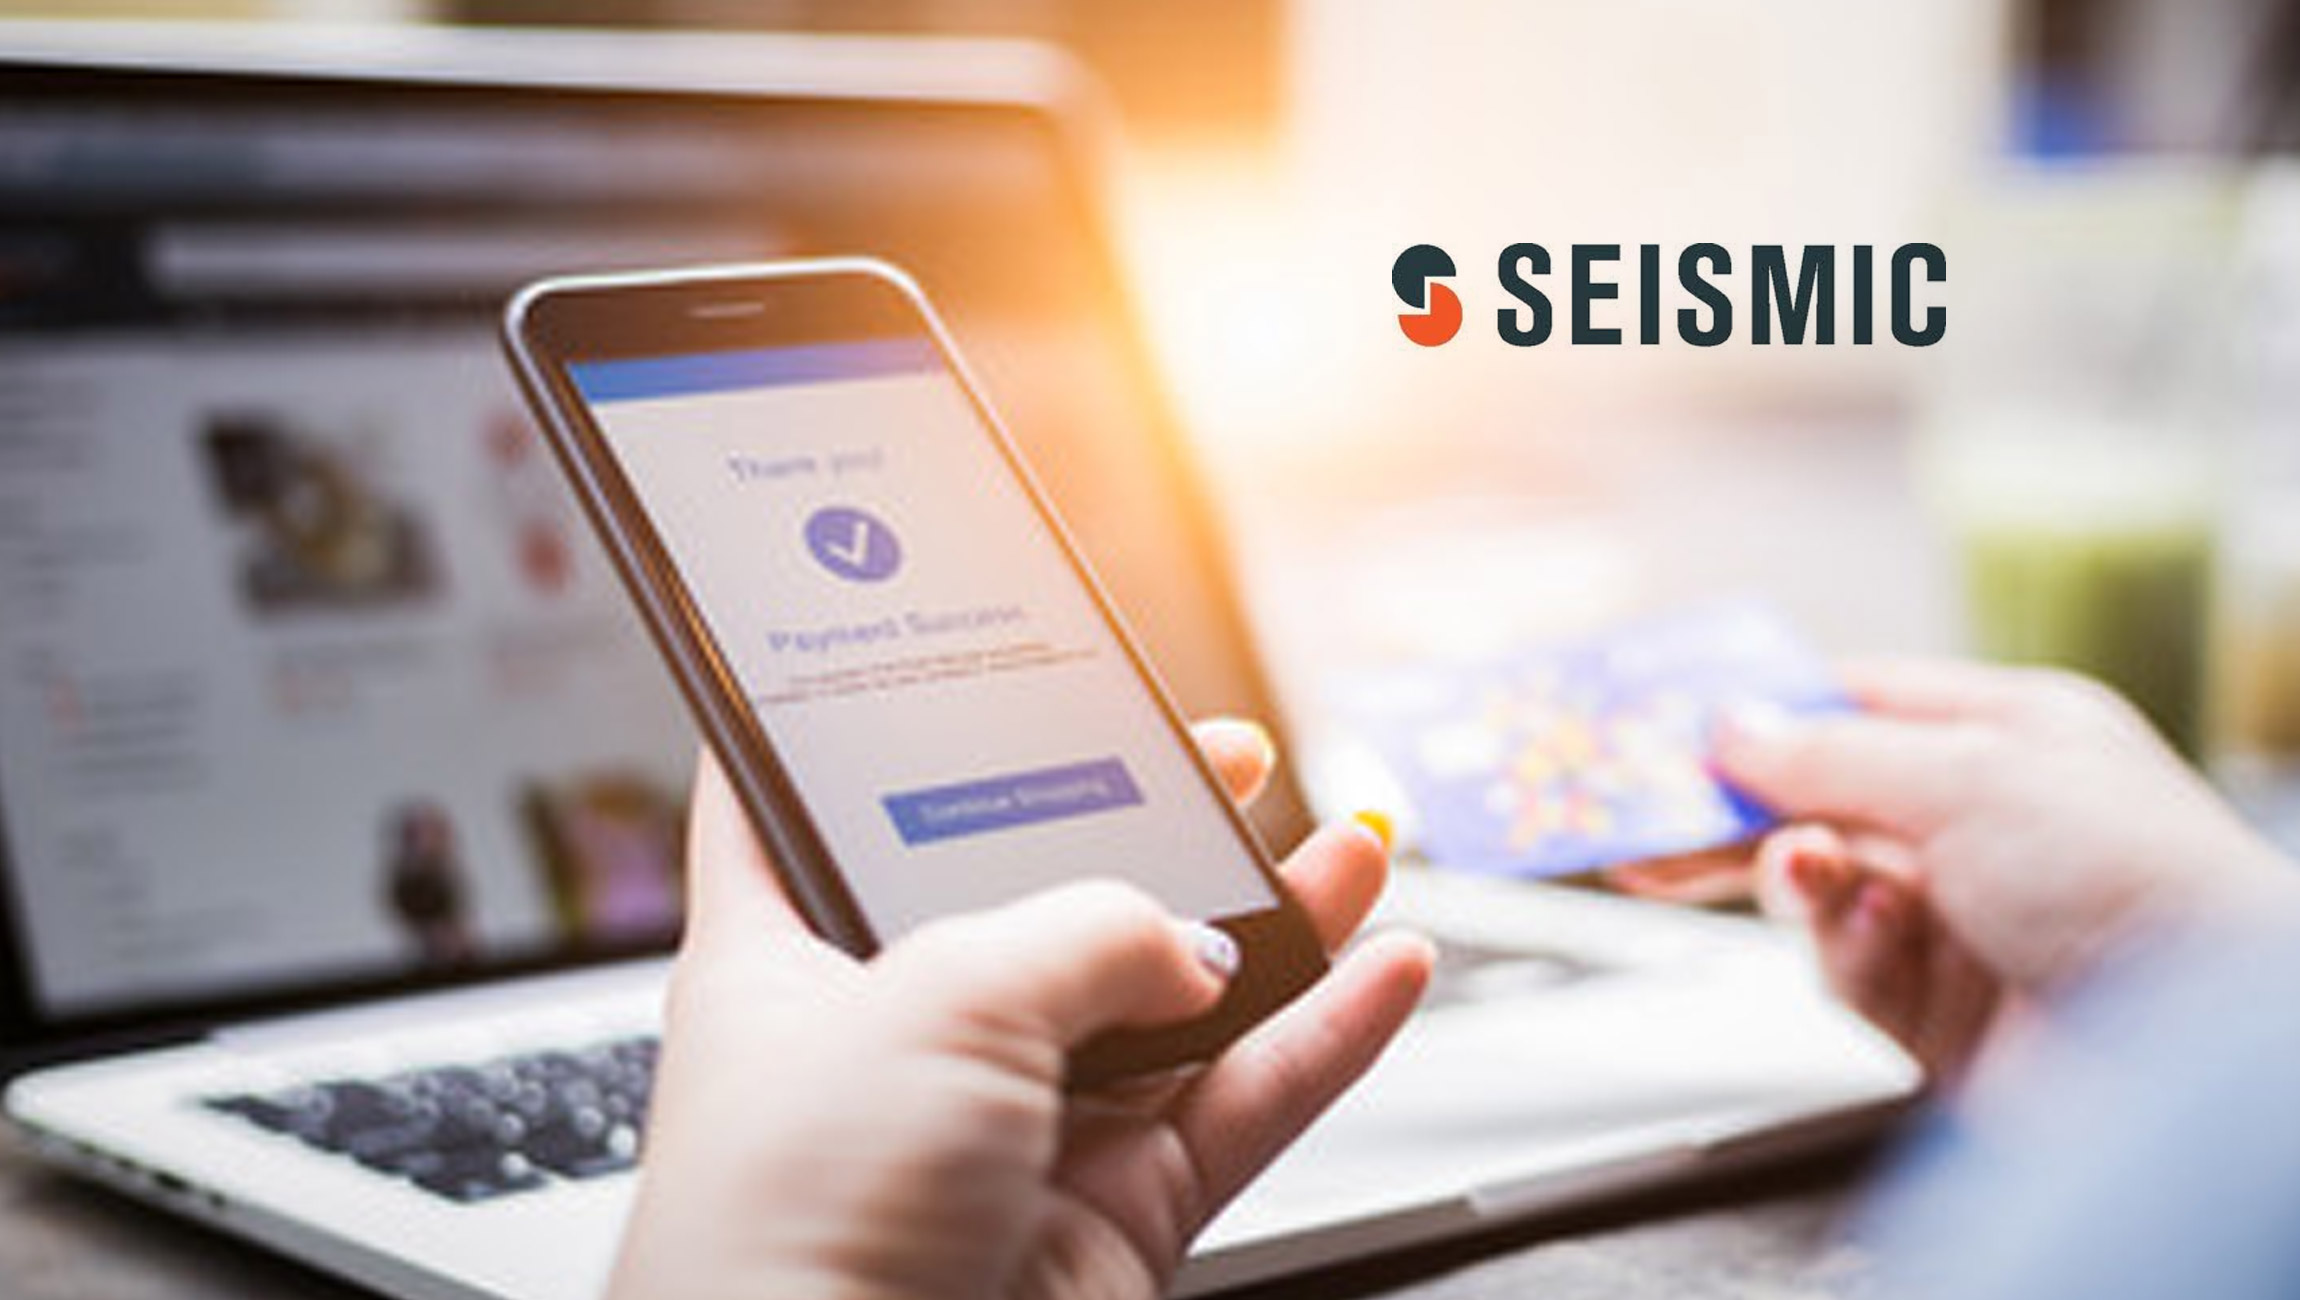 Seismic Spring 2021 Release Delivers Capabilities To Optimize AI-Guided Selling Experience for Next Era Of Digital Buyer Engagement 6